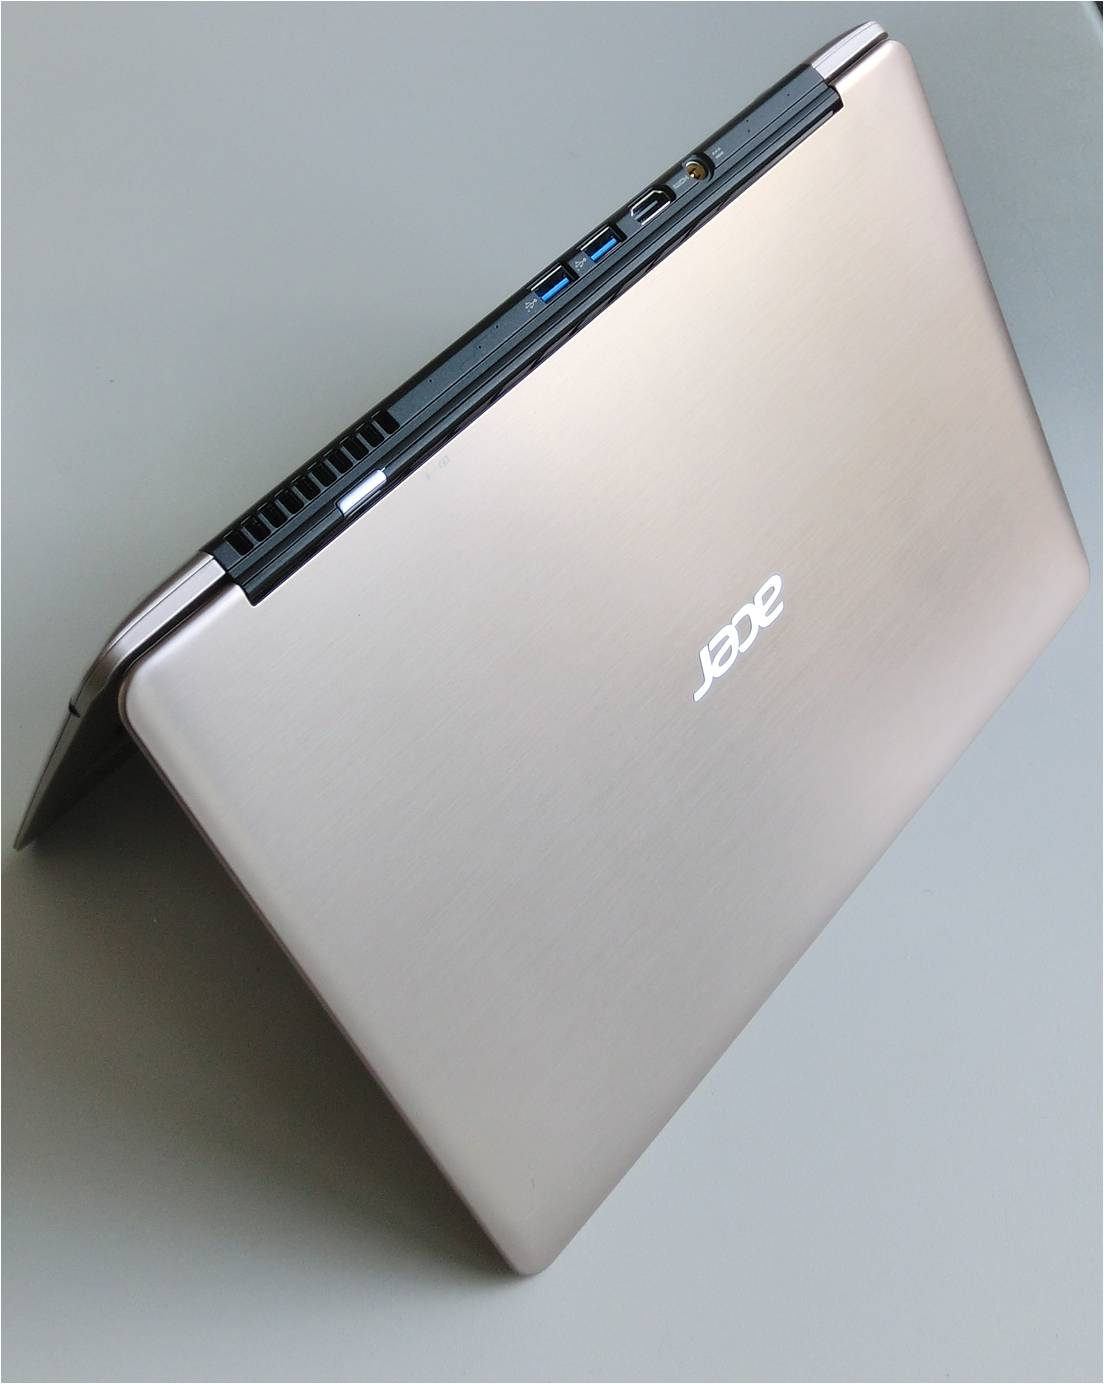 Review-Ultrabook-Acer-Aspire-S3-391-53314G52add